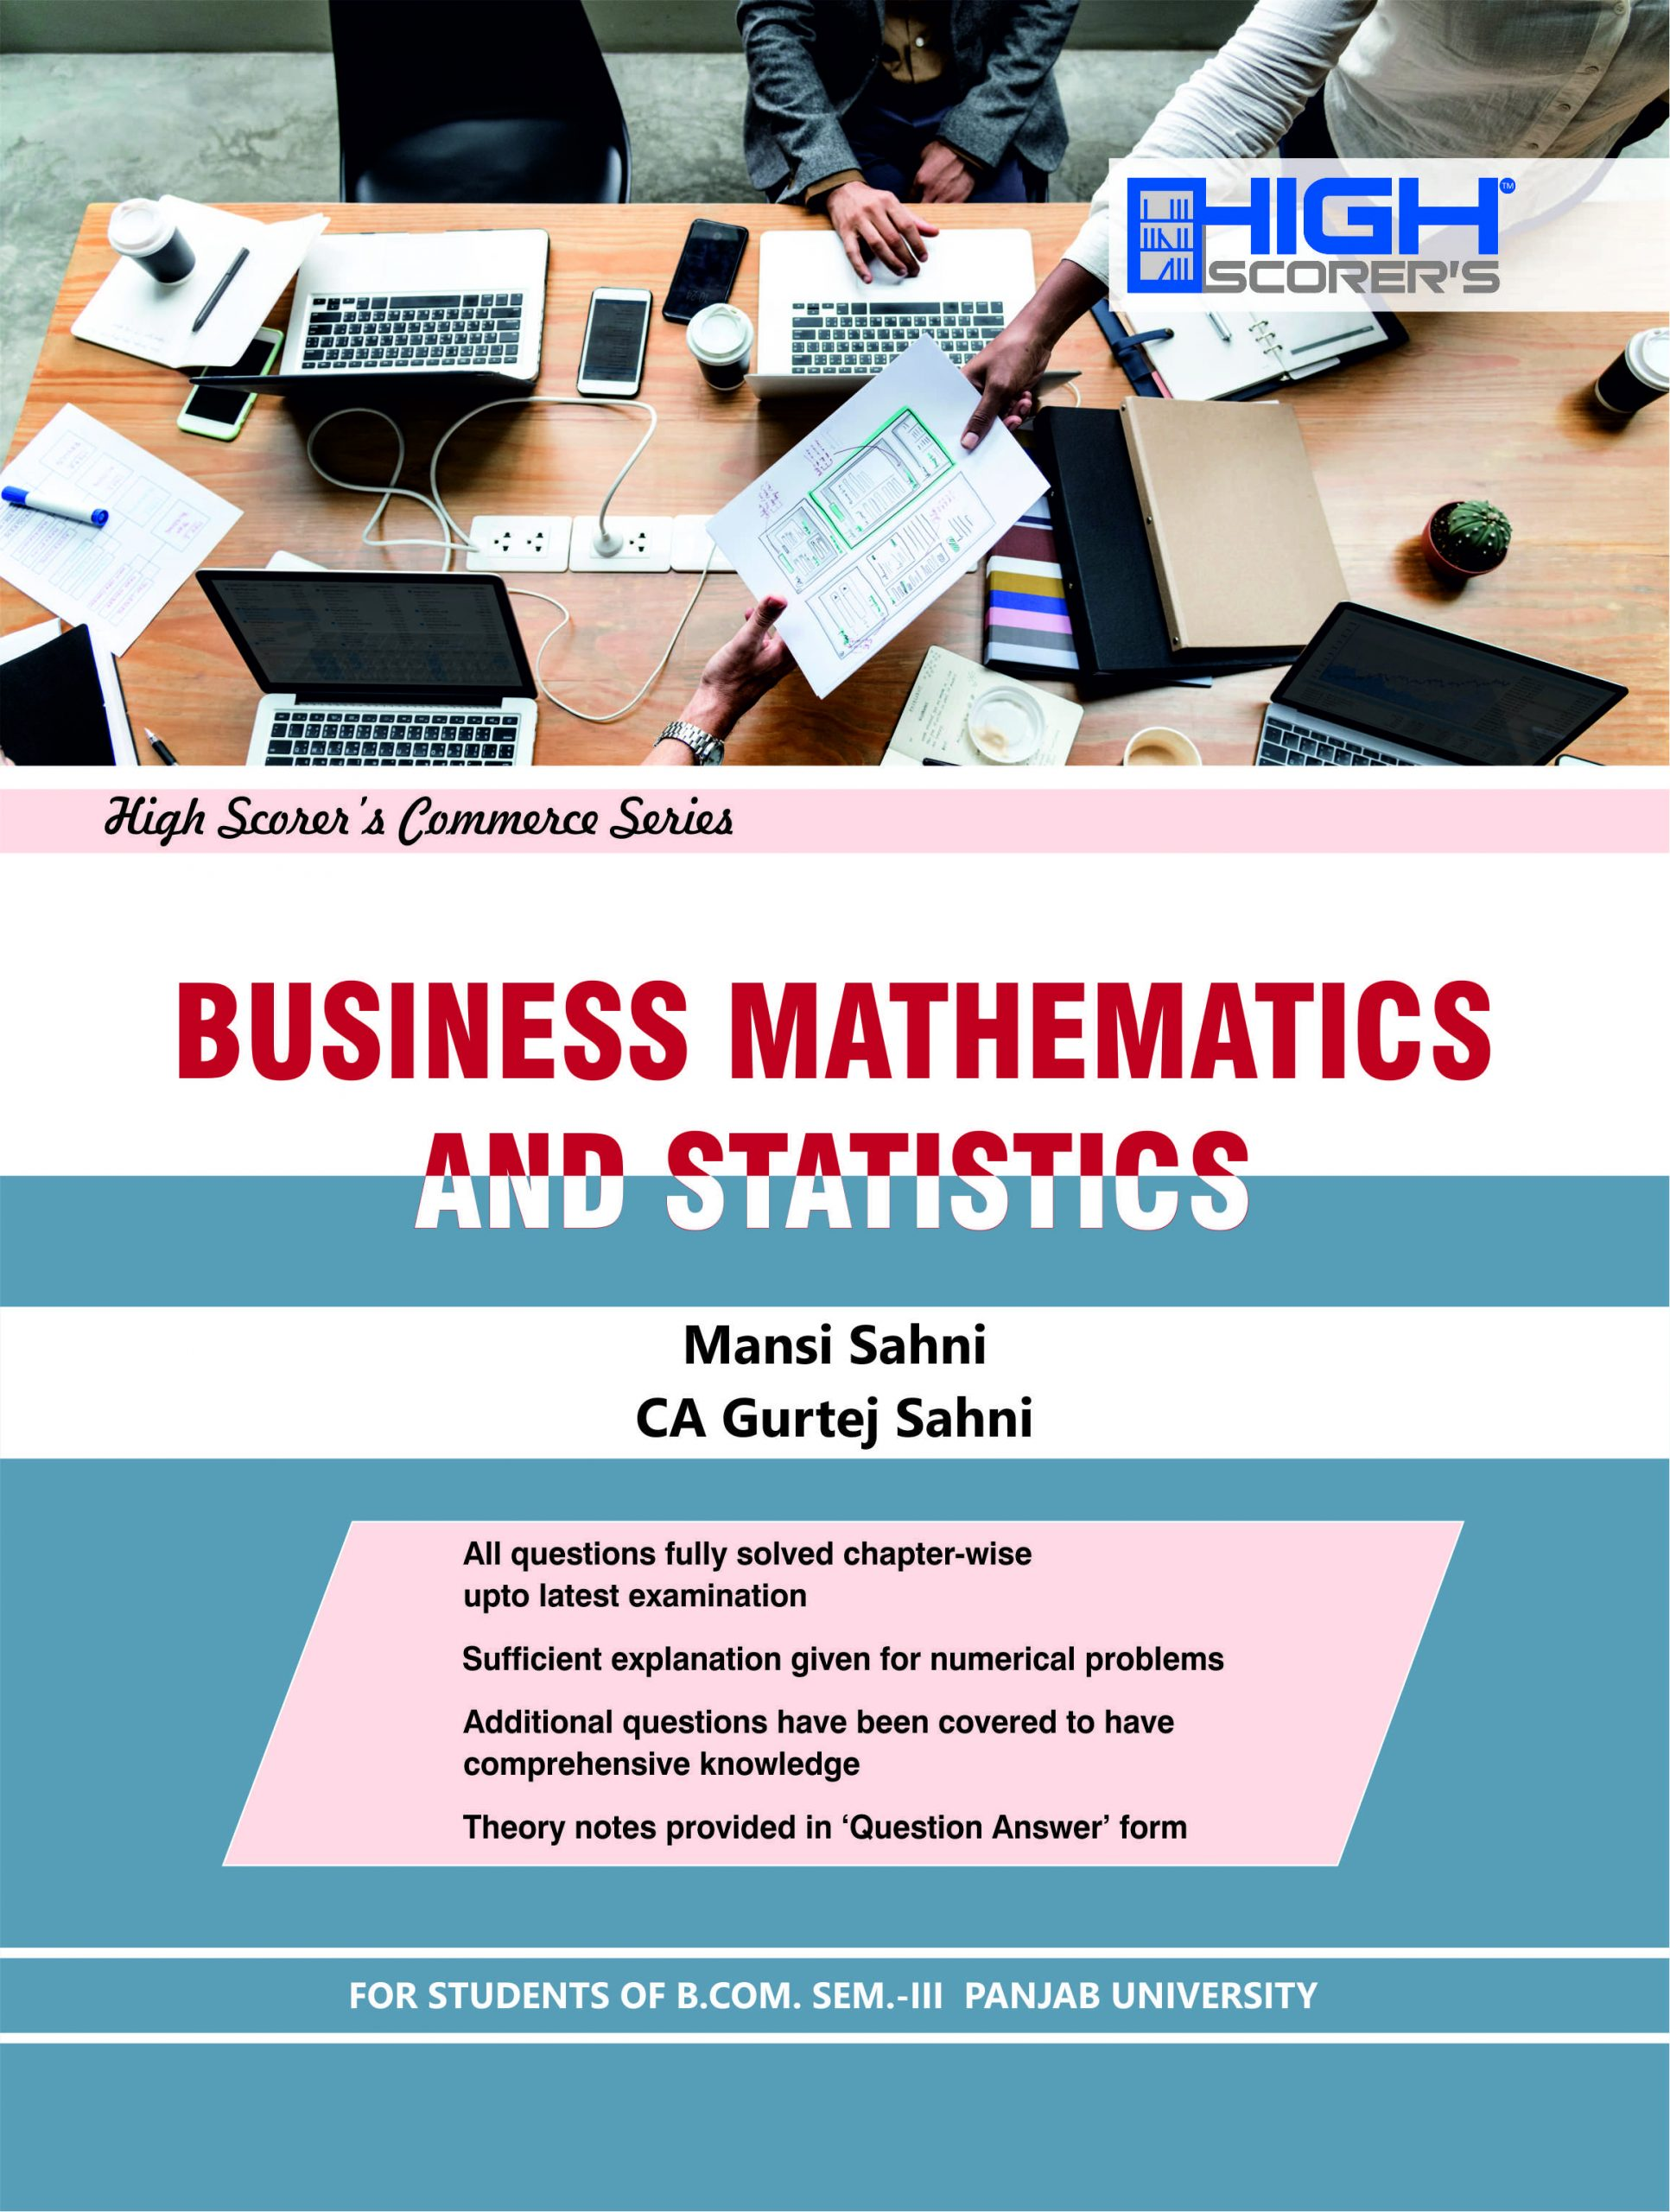 High Scorer's Business Mathematics & Statistics for B.Com Semester-III by Mansi Sahni & CA Gurtej Sahni (Mohindra Publishing House Edition 2020 for Panjab University